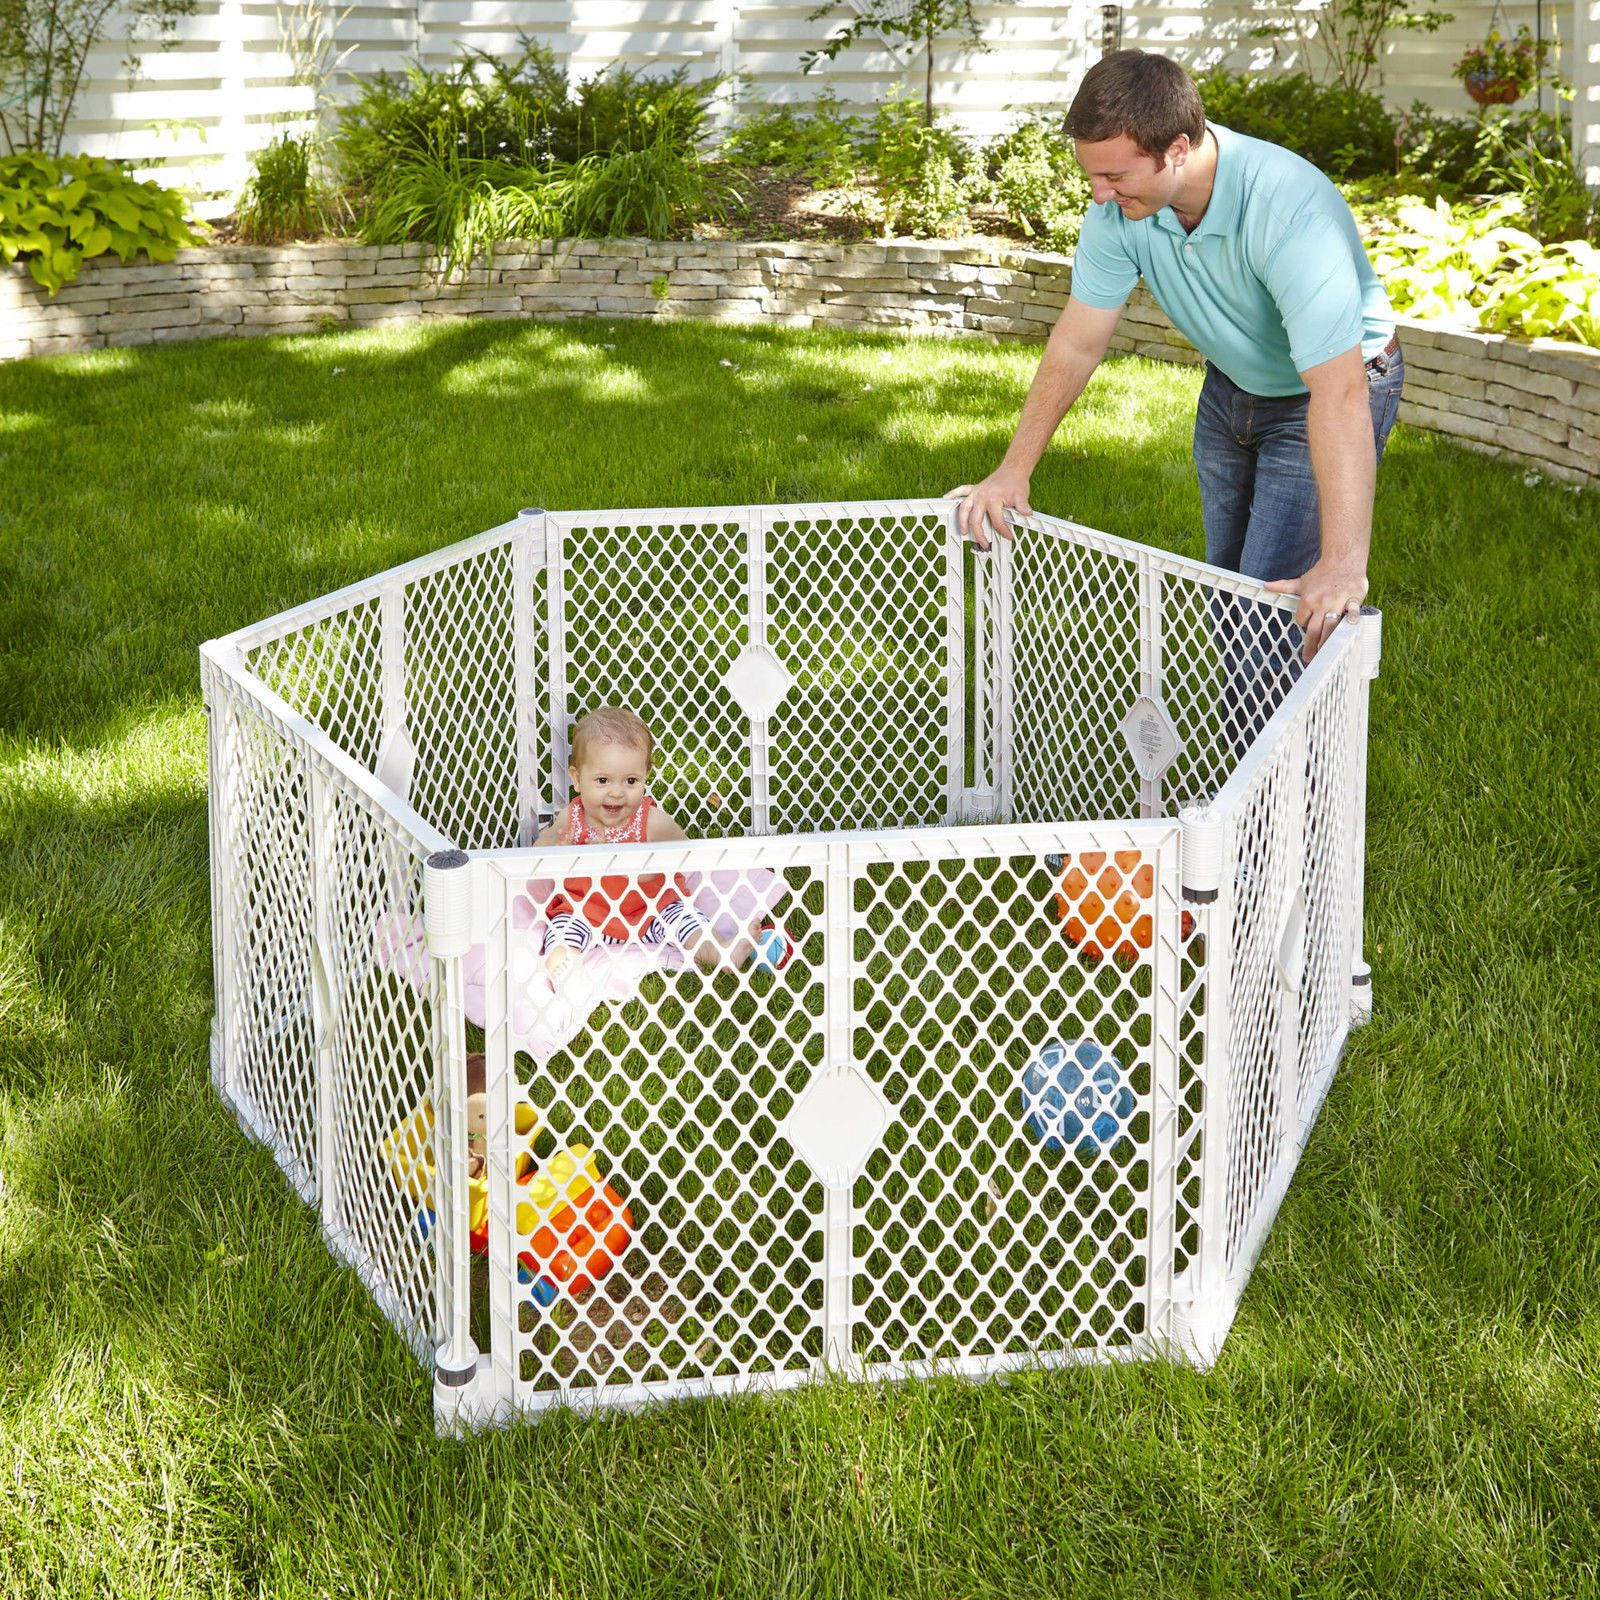 New north states superyard xt baby gate play yard pen crib playpen